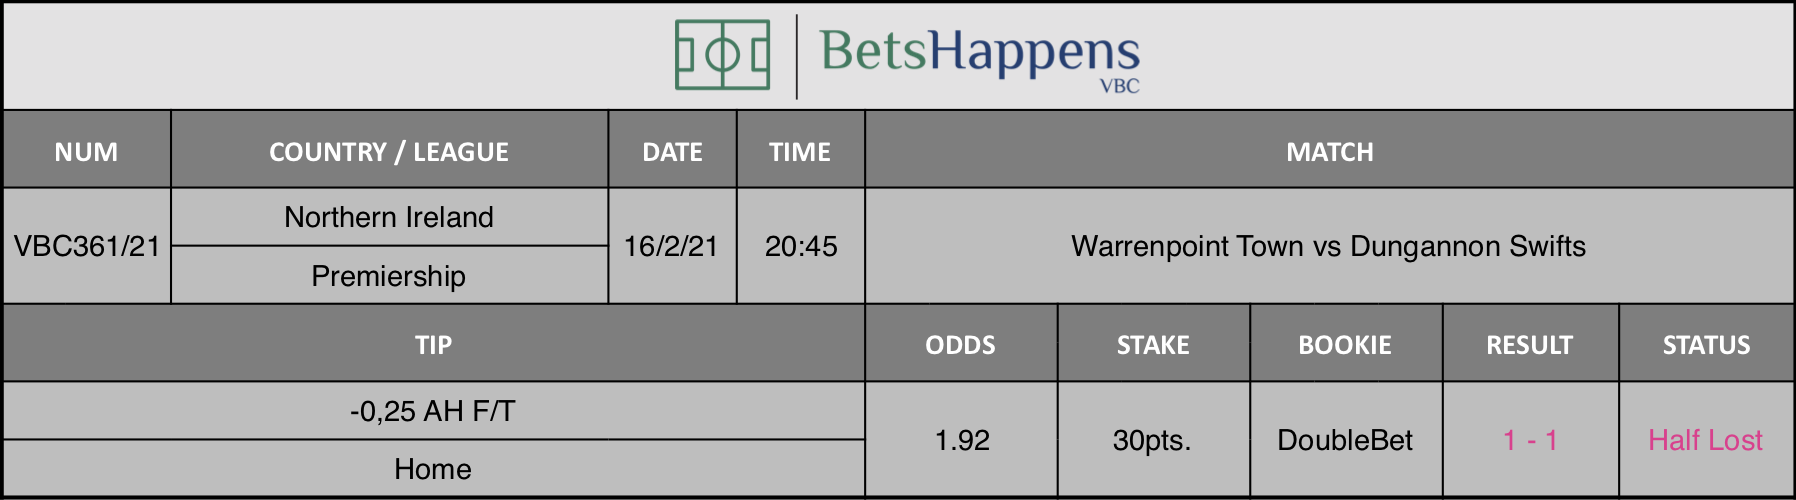 Results of our tip for the Warrenpoint Town vs Dungannon Swifts match where -0,25 AH F/T Home is recommended.